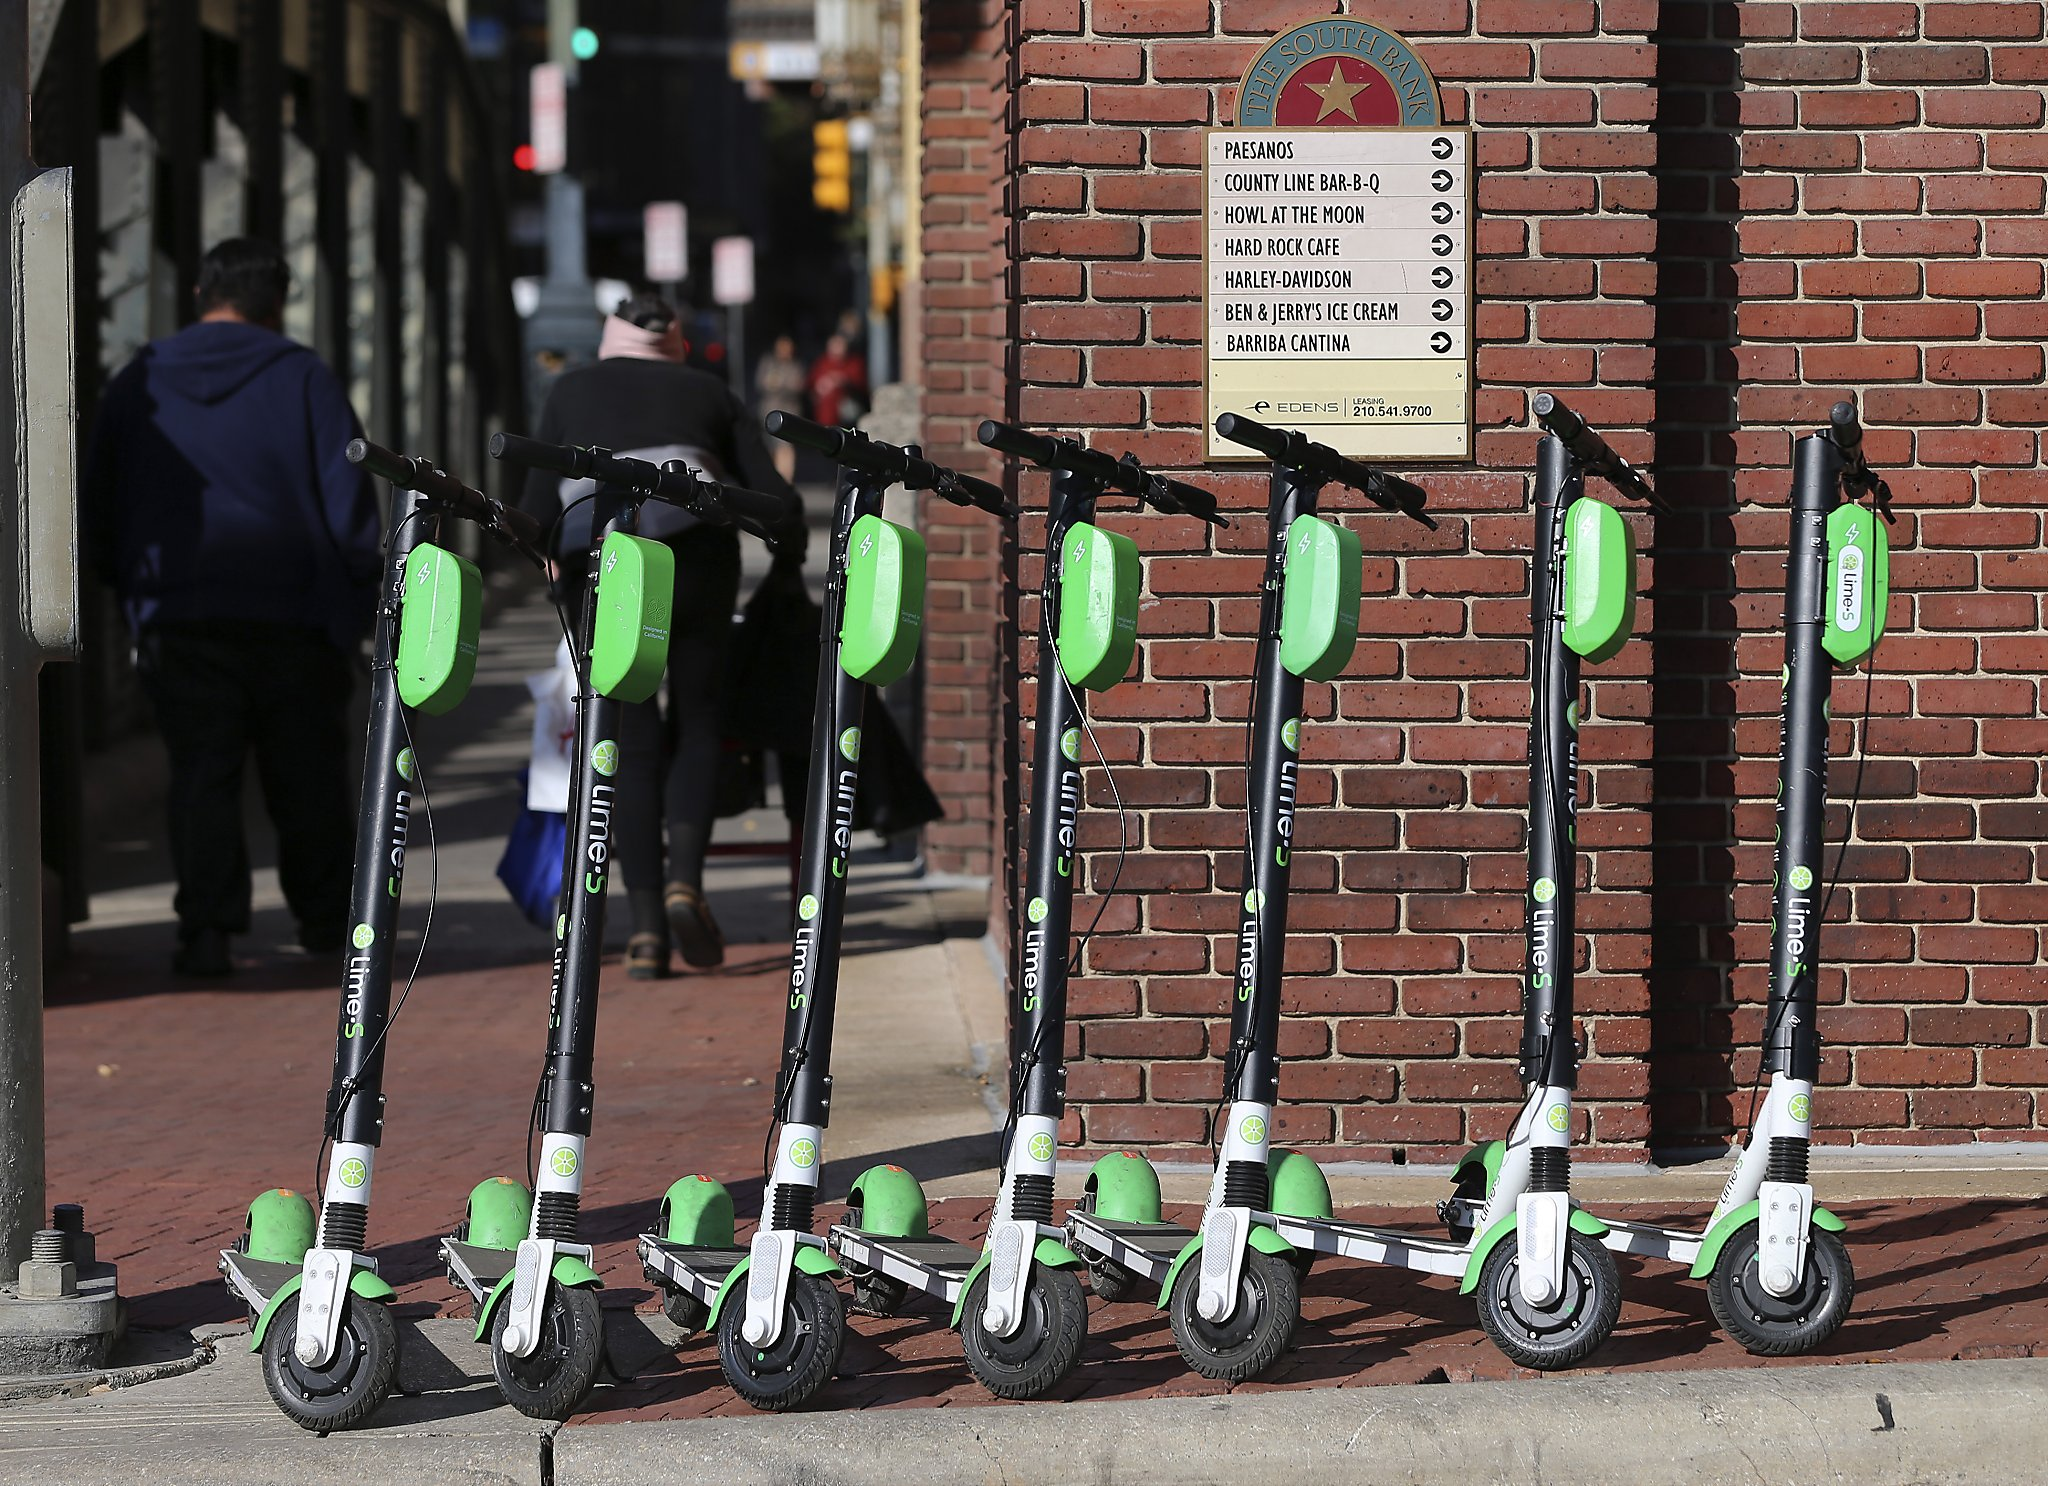 More e-scooters have come to Puget Sound. Would they work in Seattle?